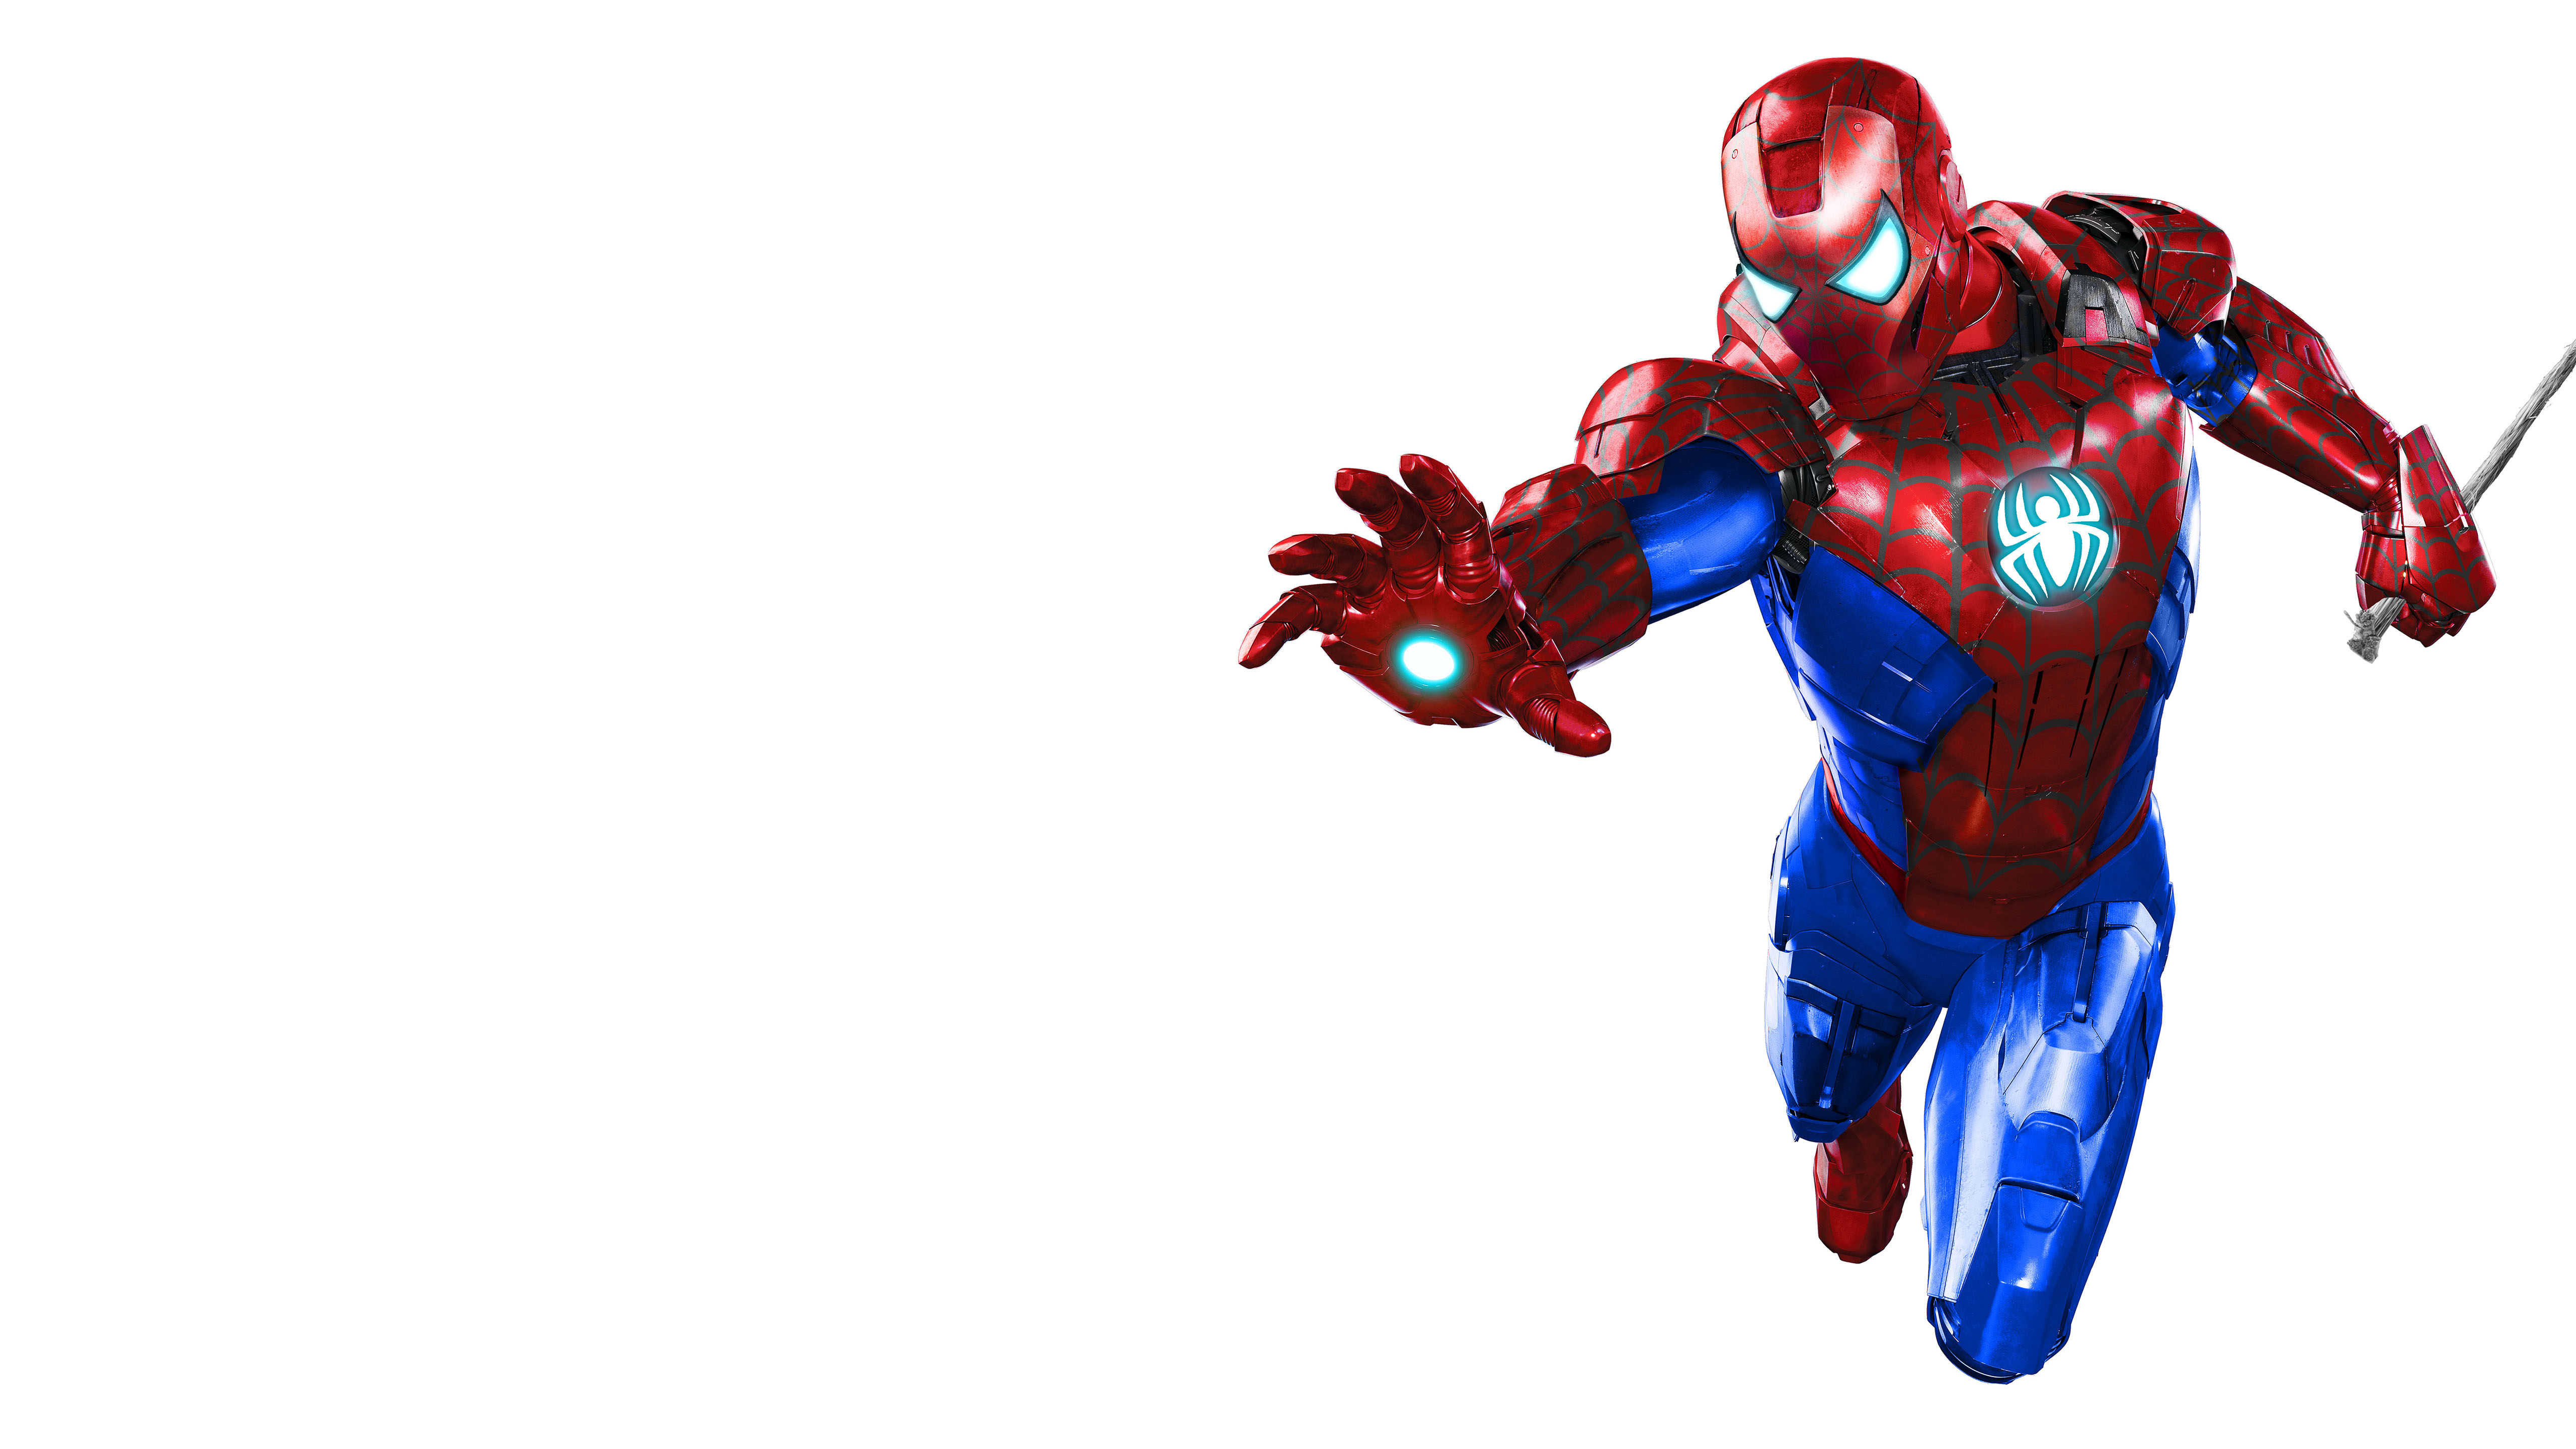 Iron spider man suit hd superheroes 4k wallpapers - Spiderman and ironman wallpaper ...